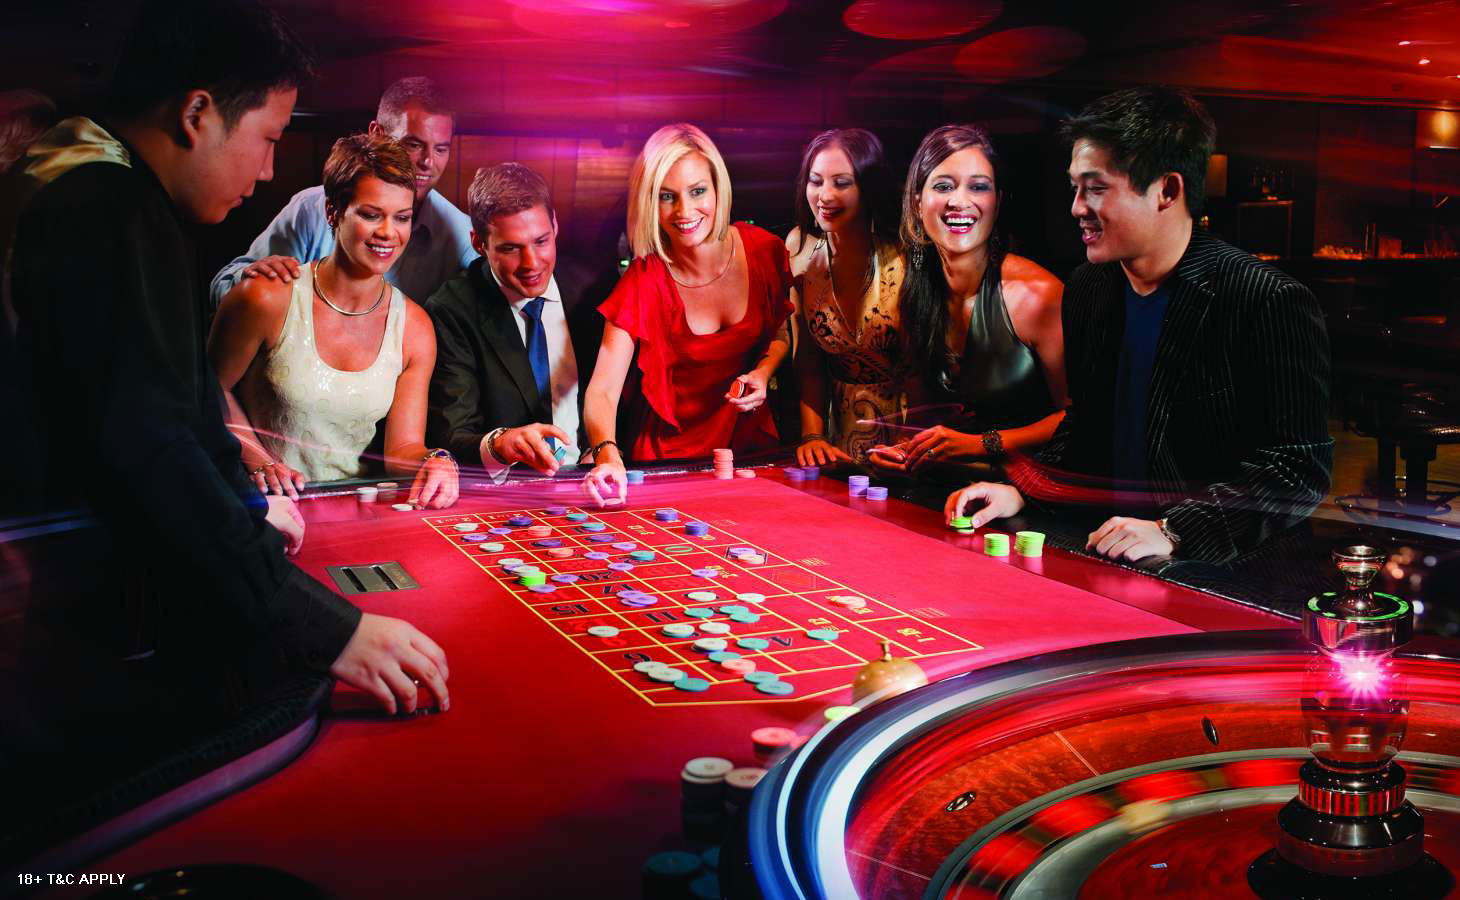 CAN YOU GET BIGGER AND BETTER ONLINE BINGO BONUS OFFERS? (Posts by isla fisher)